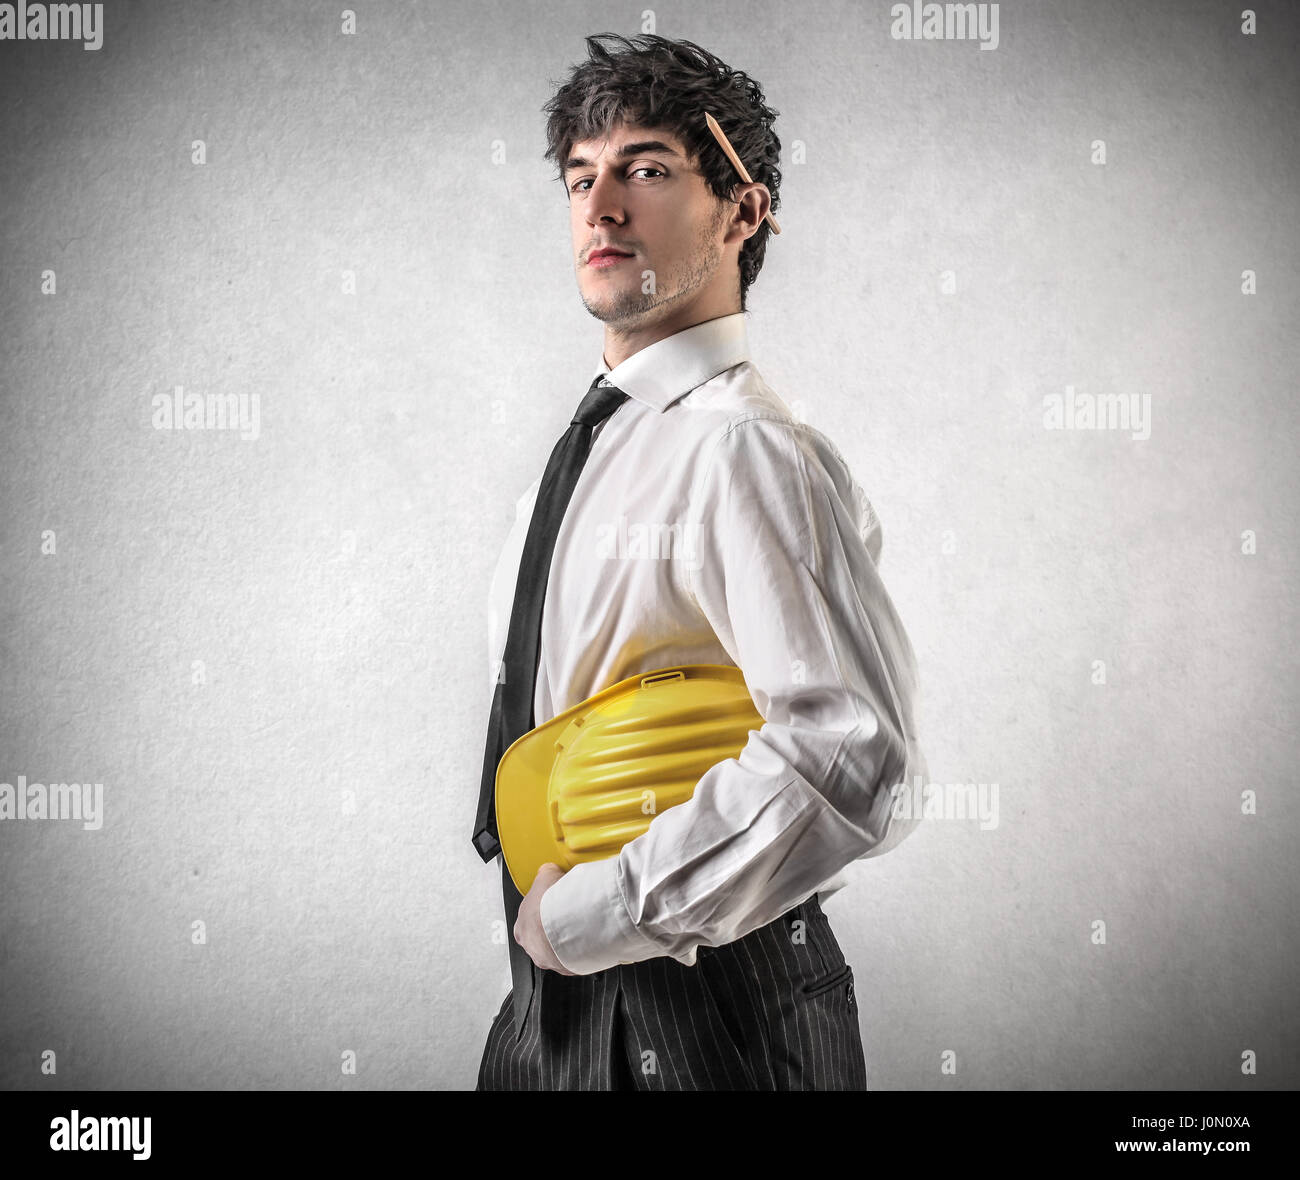 Confident construction worker - Stock Image